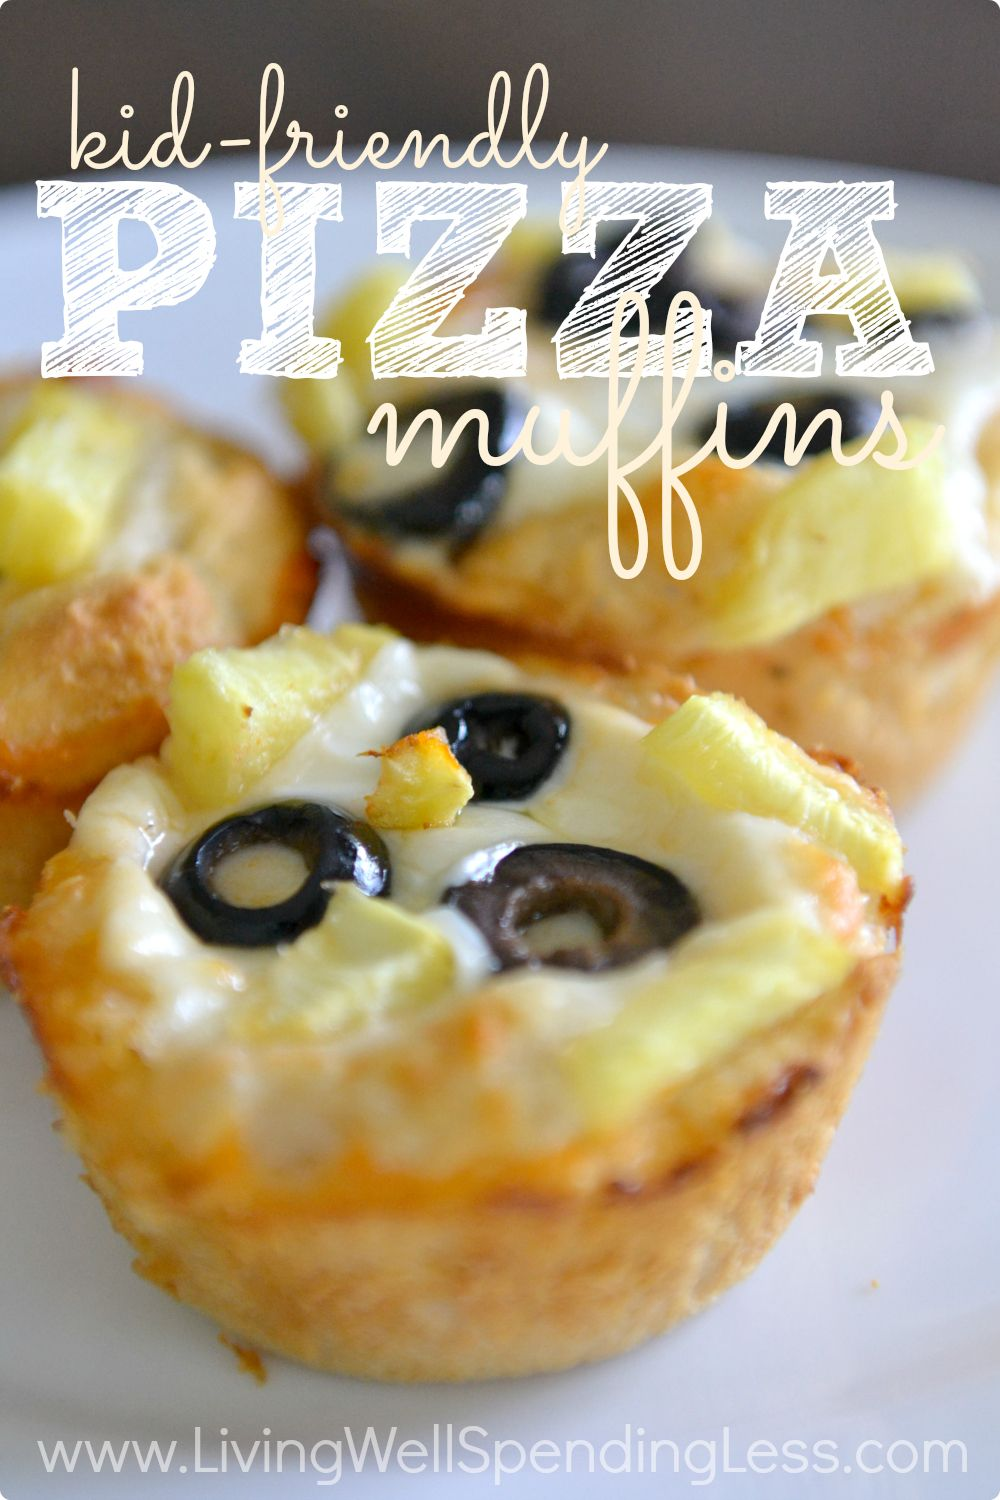 Looking for a fun meal idea that your kids can help prepare?  These quick, easy, & super tasty pizza muffins are a snap to make and a great way to get even young kids involved in the kitchen.  Perfect for a simple summer lunch or afternoon snack!